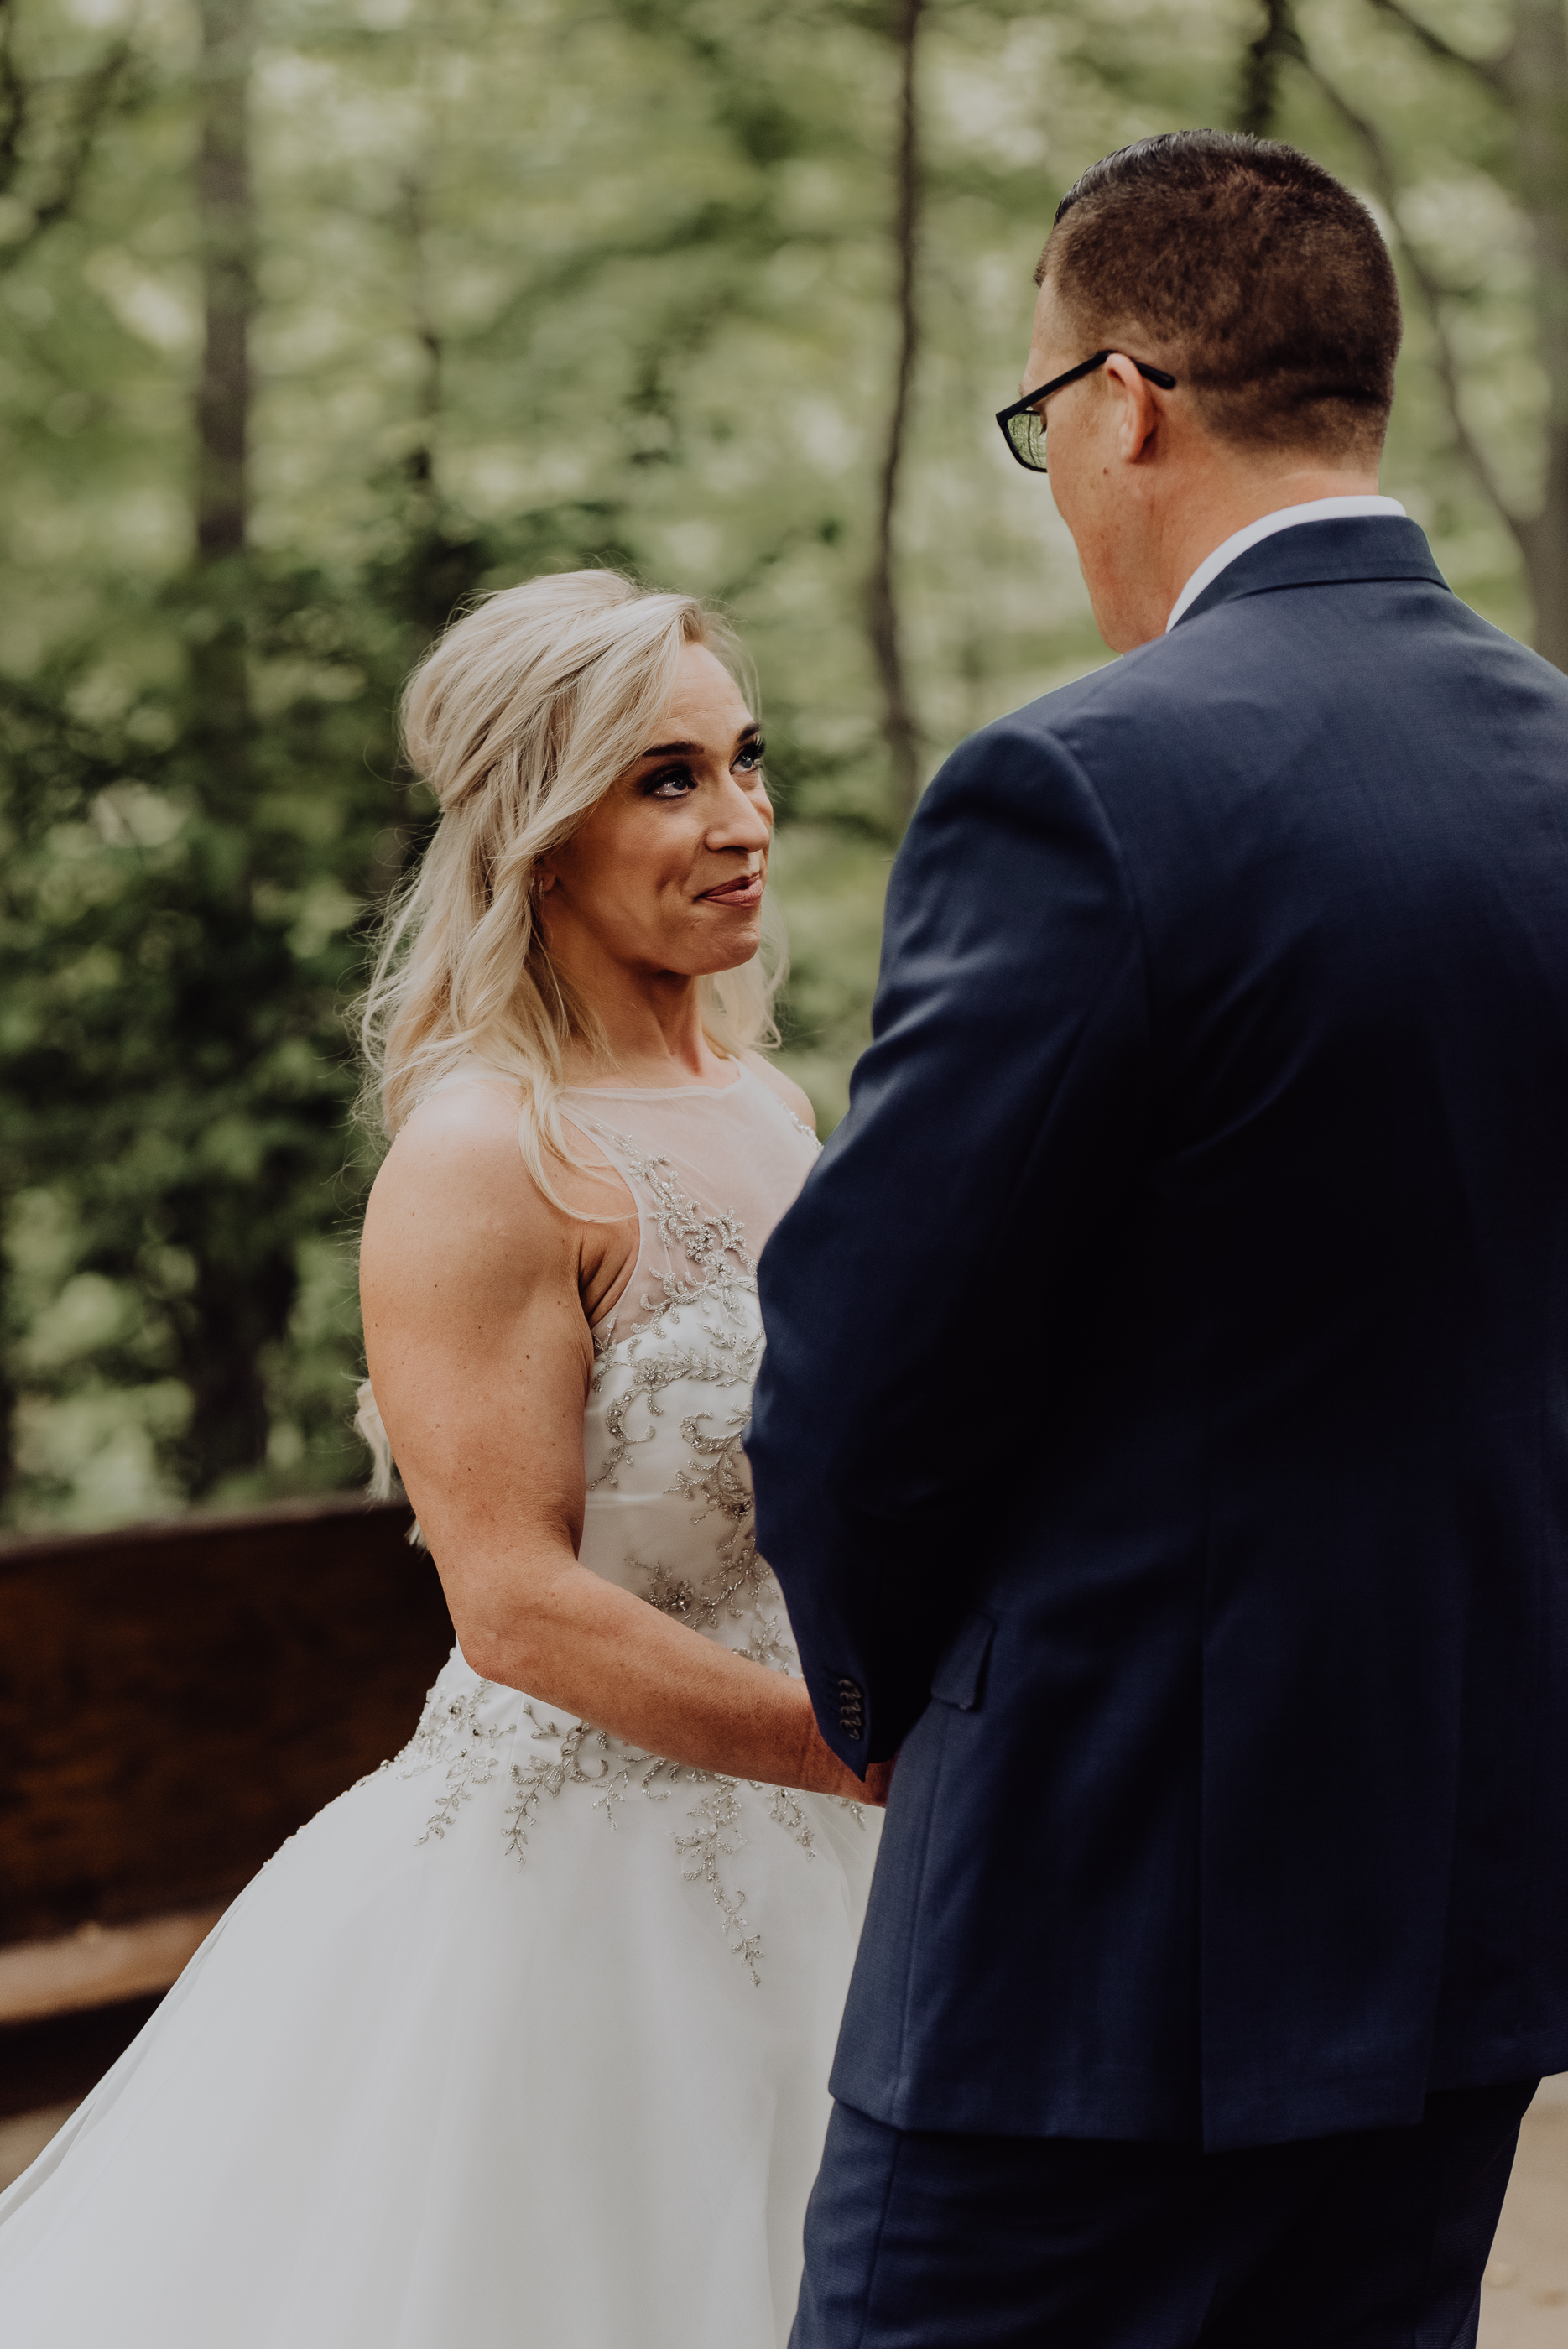 amanda and mike tennessee wedding at tanglewood house by wilde company-13.jpg